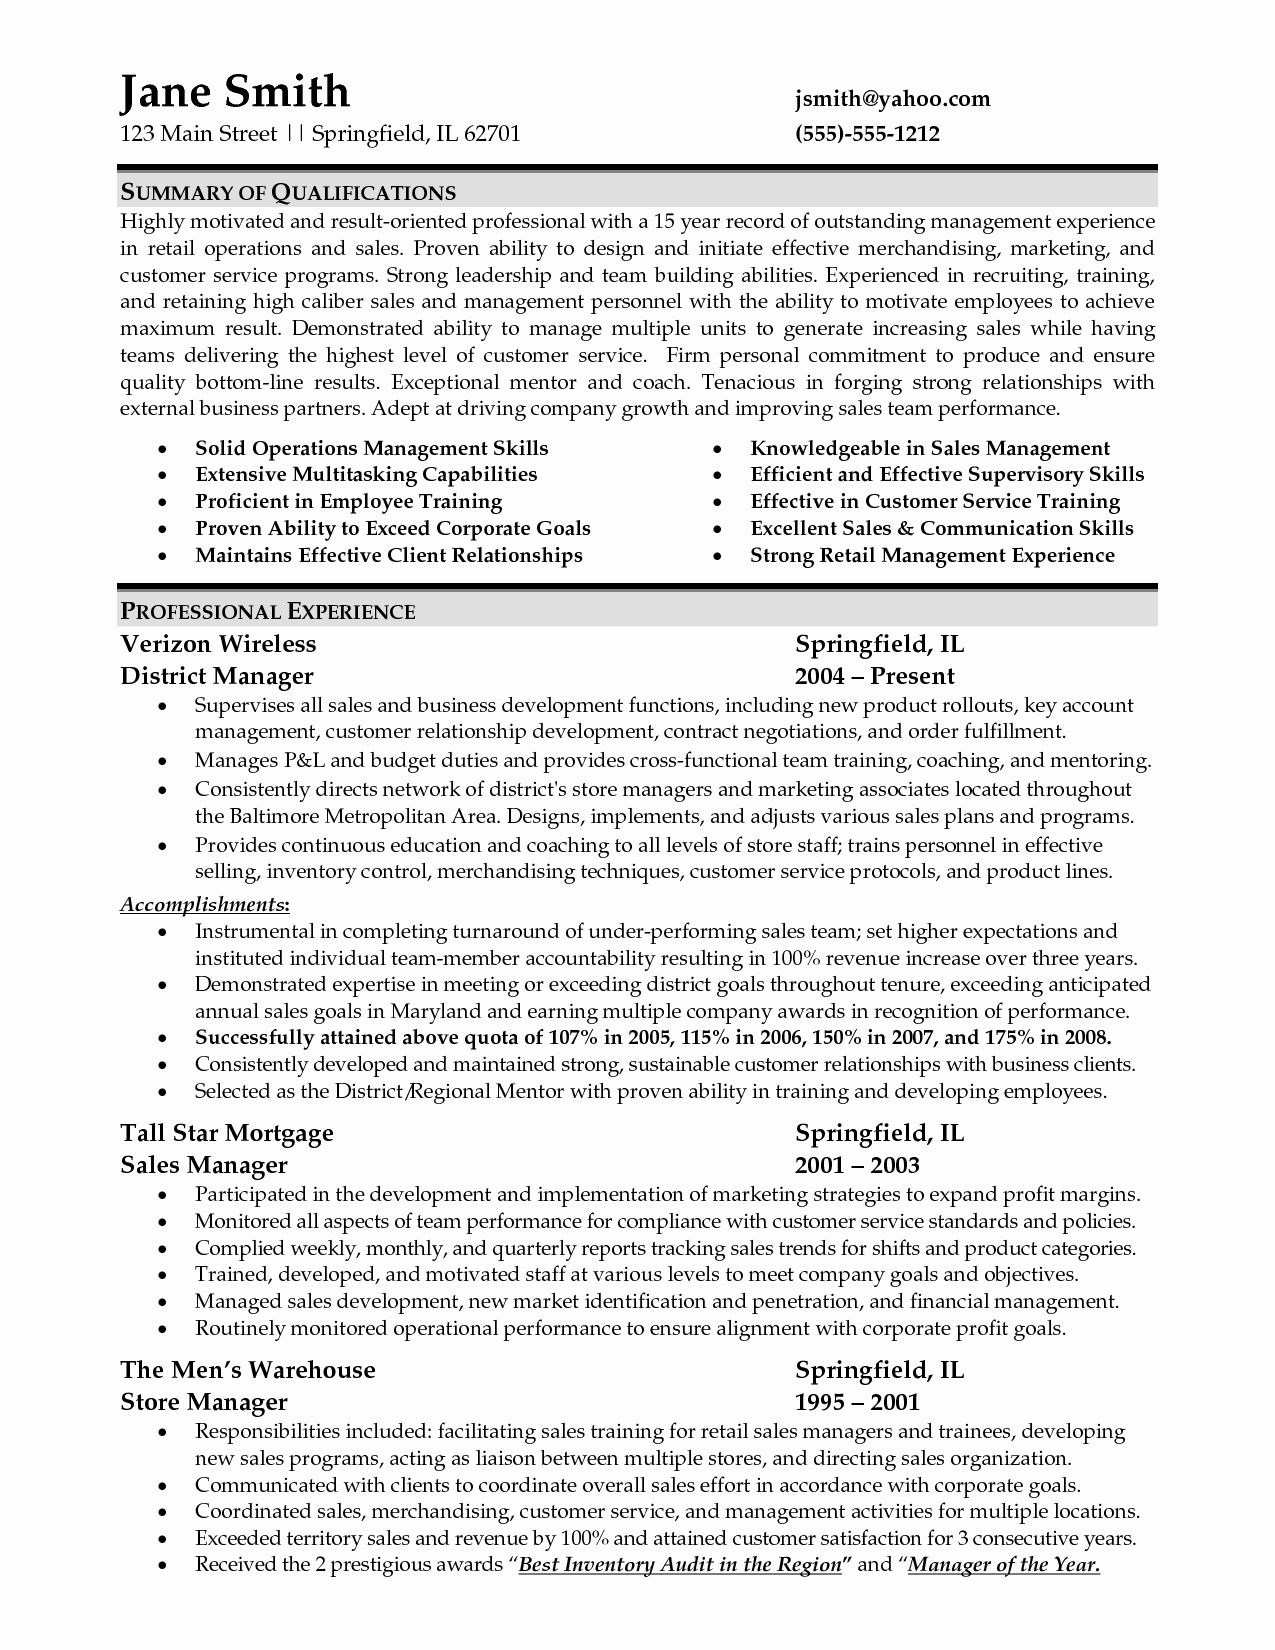 25 former Business Owner Resume in 2020 Retail resume